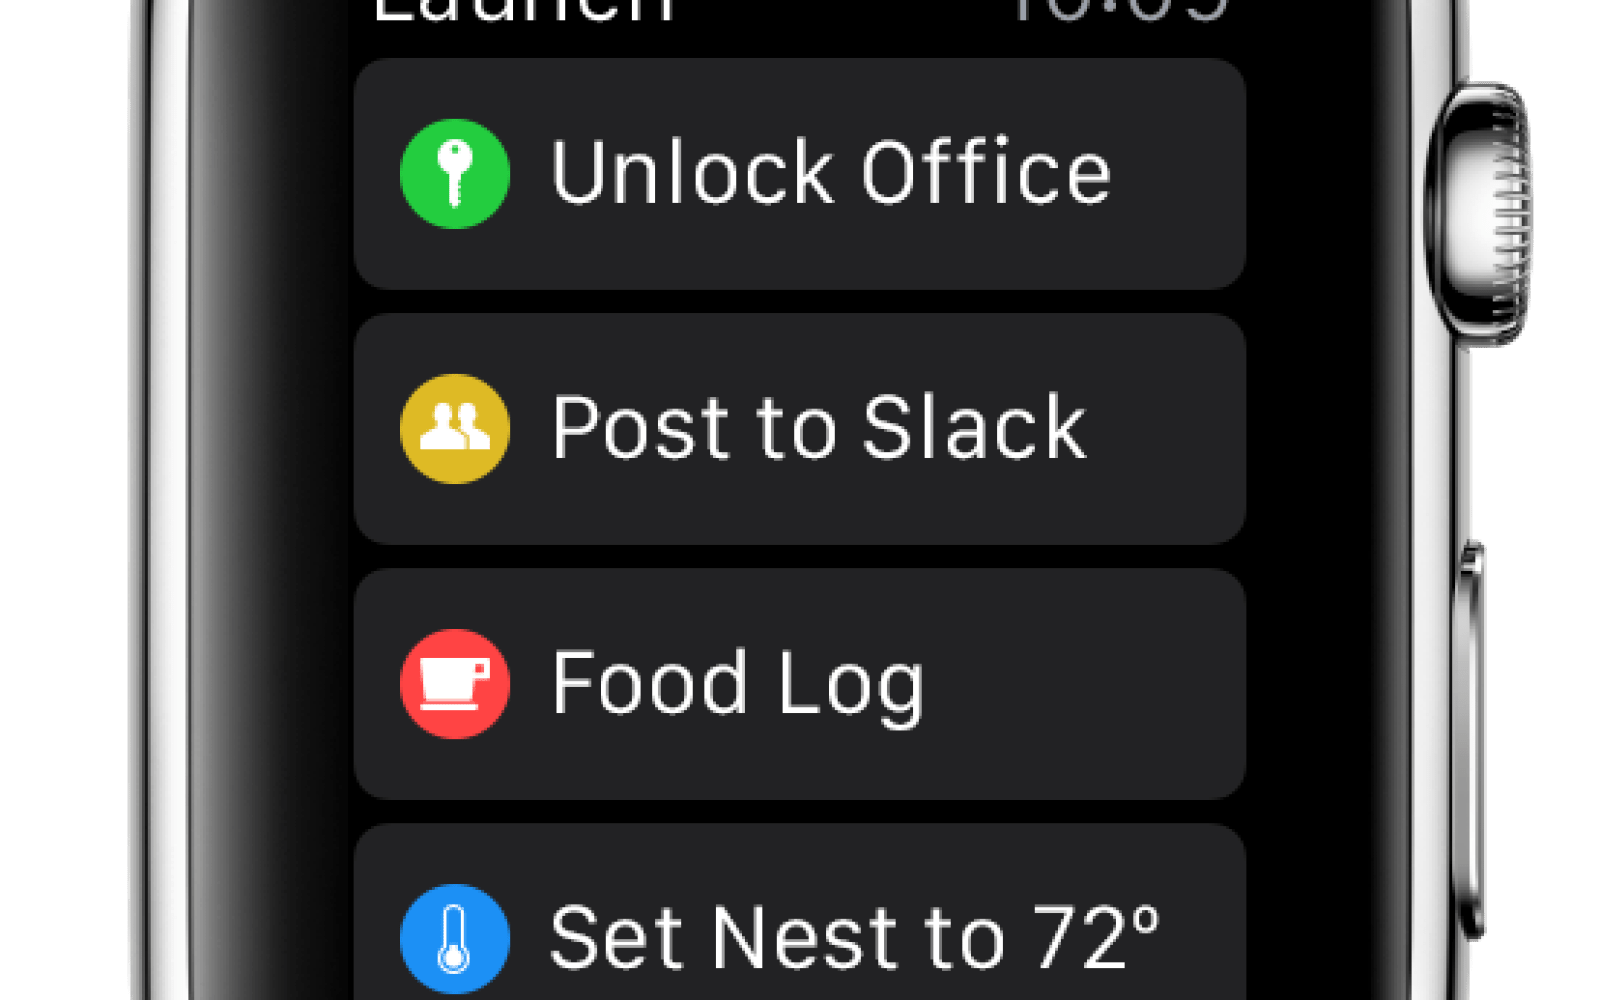 Launch Center Pro is coming to the Apple Watch